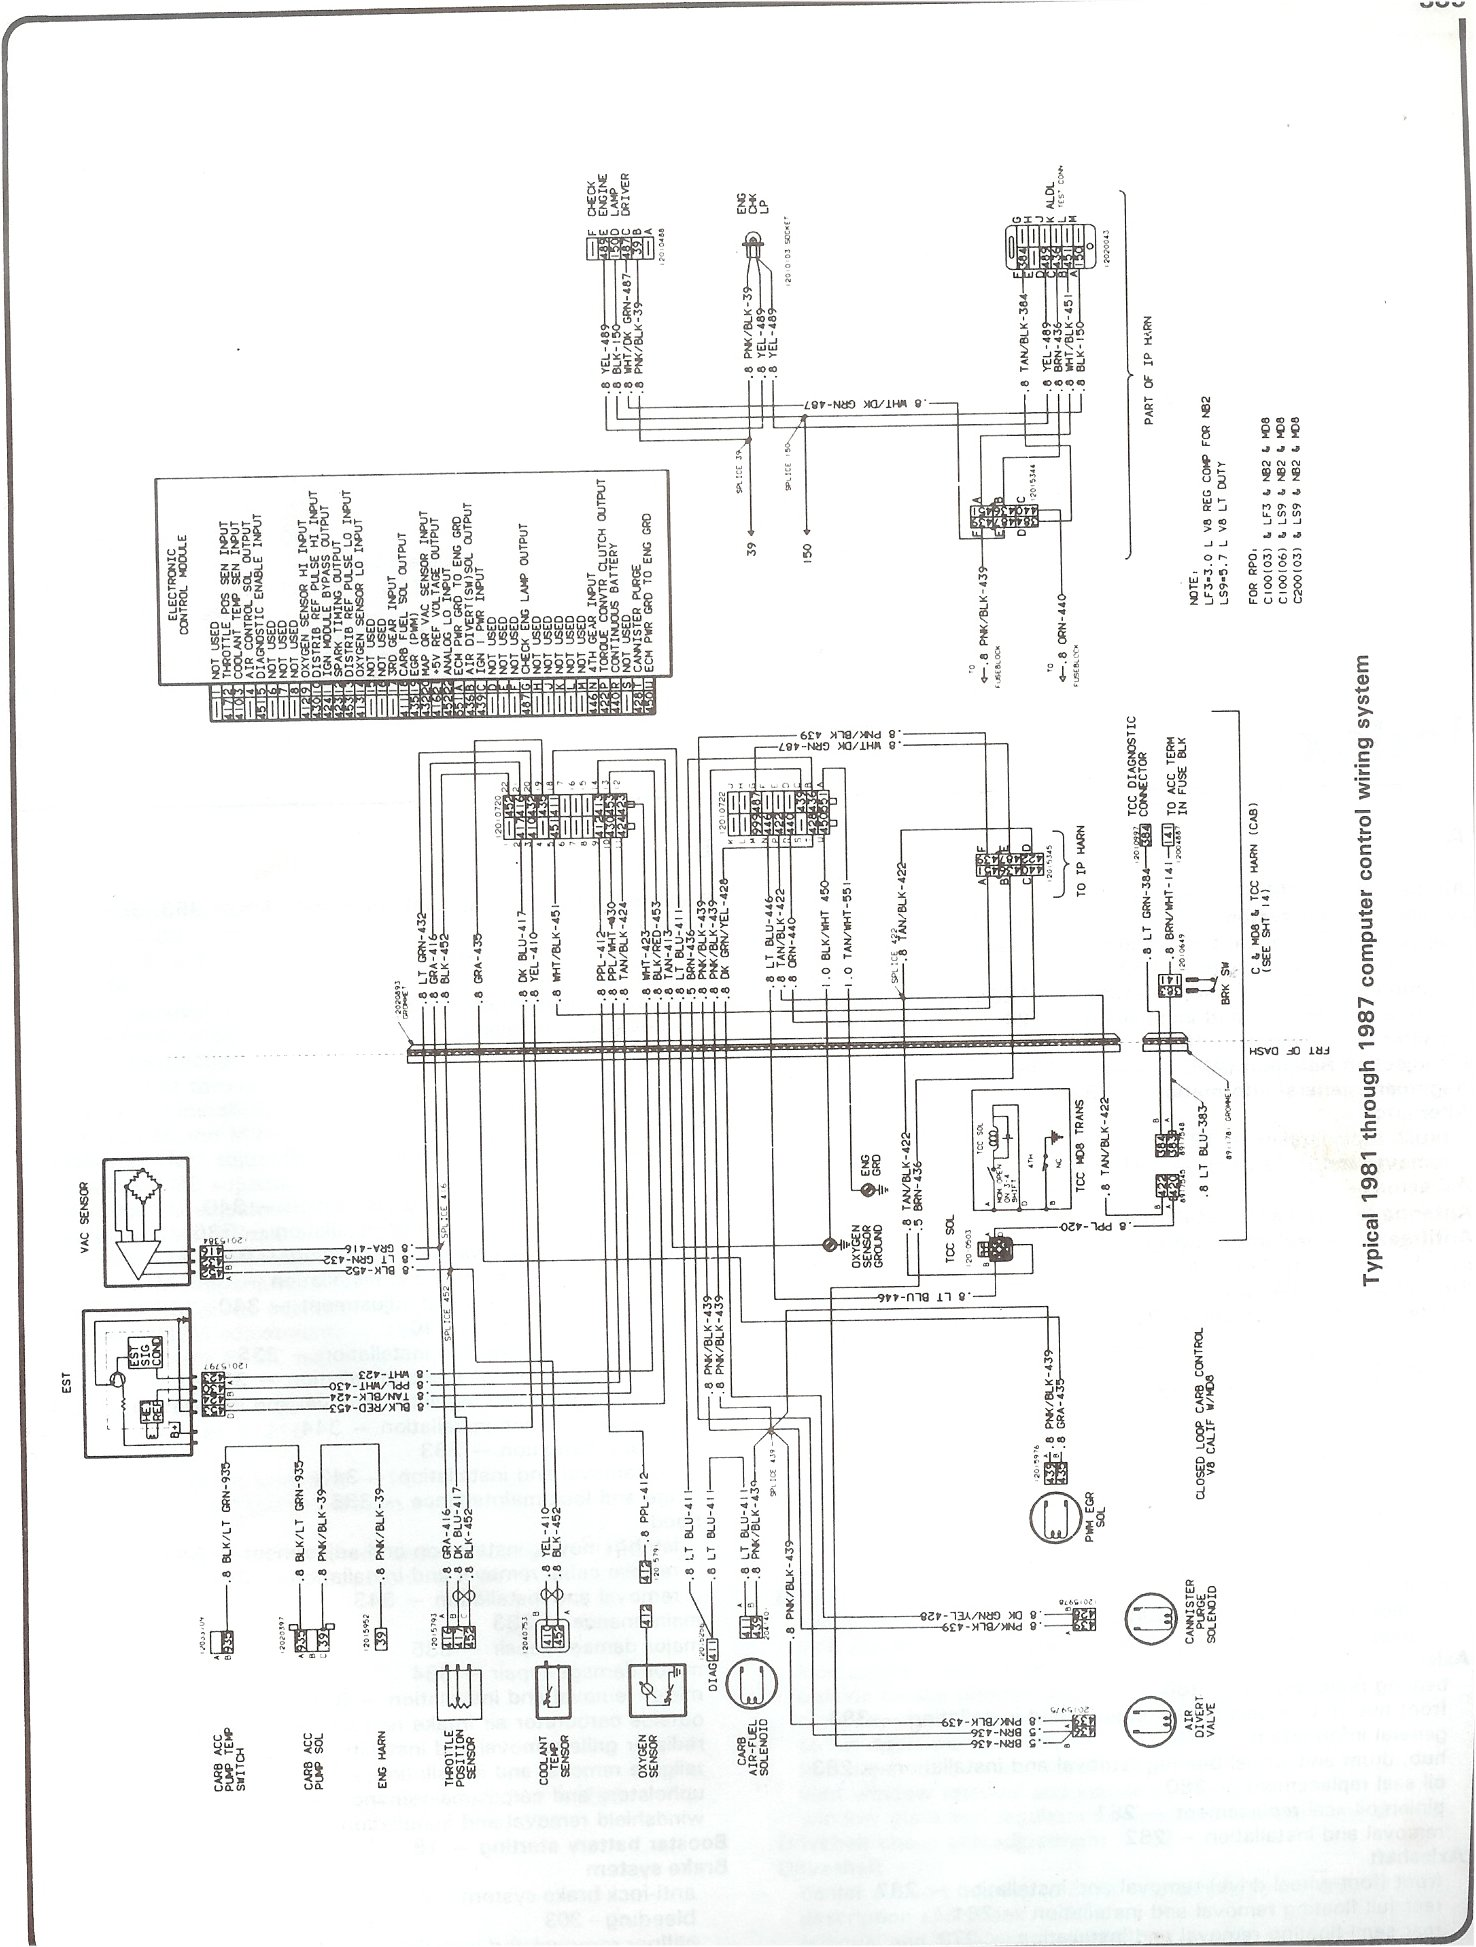 82 chevy k10 schematic enthusiast wiring diagrams u2022 rh rasalibre co